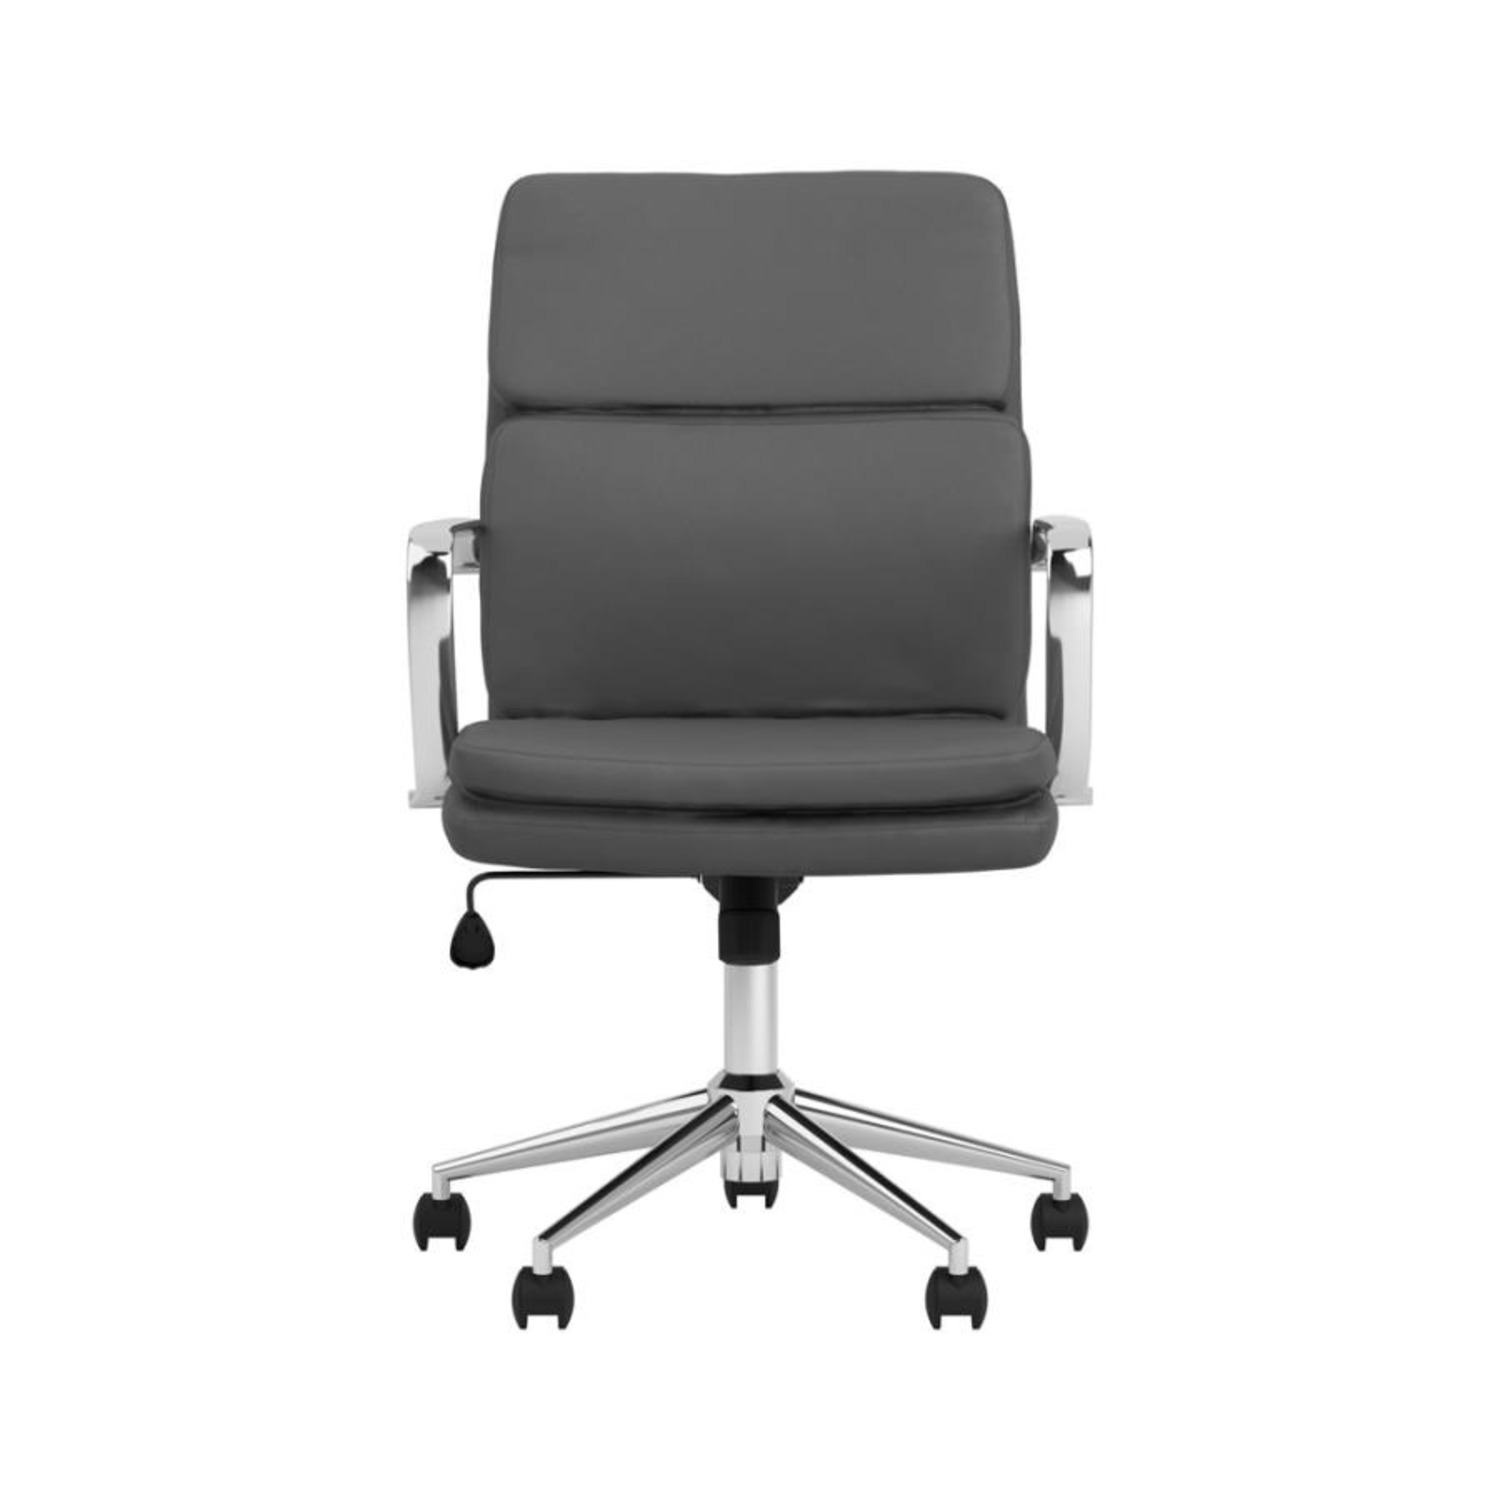 Office Chair In Grey Leatherette & Chrome Finish - image-1